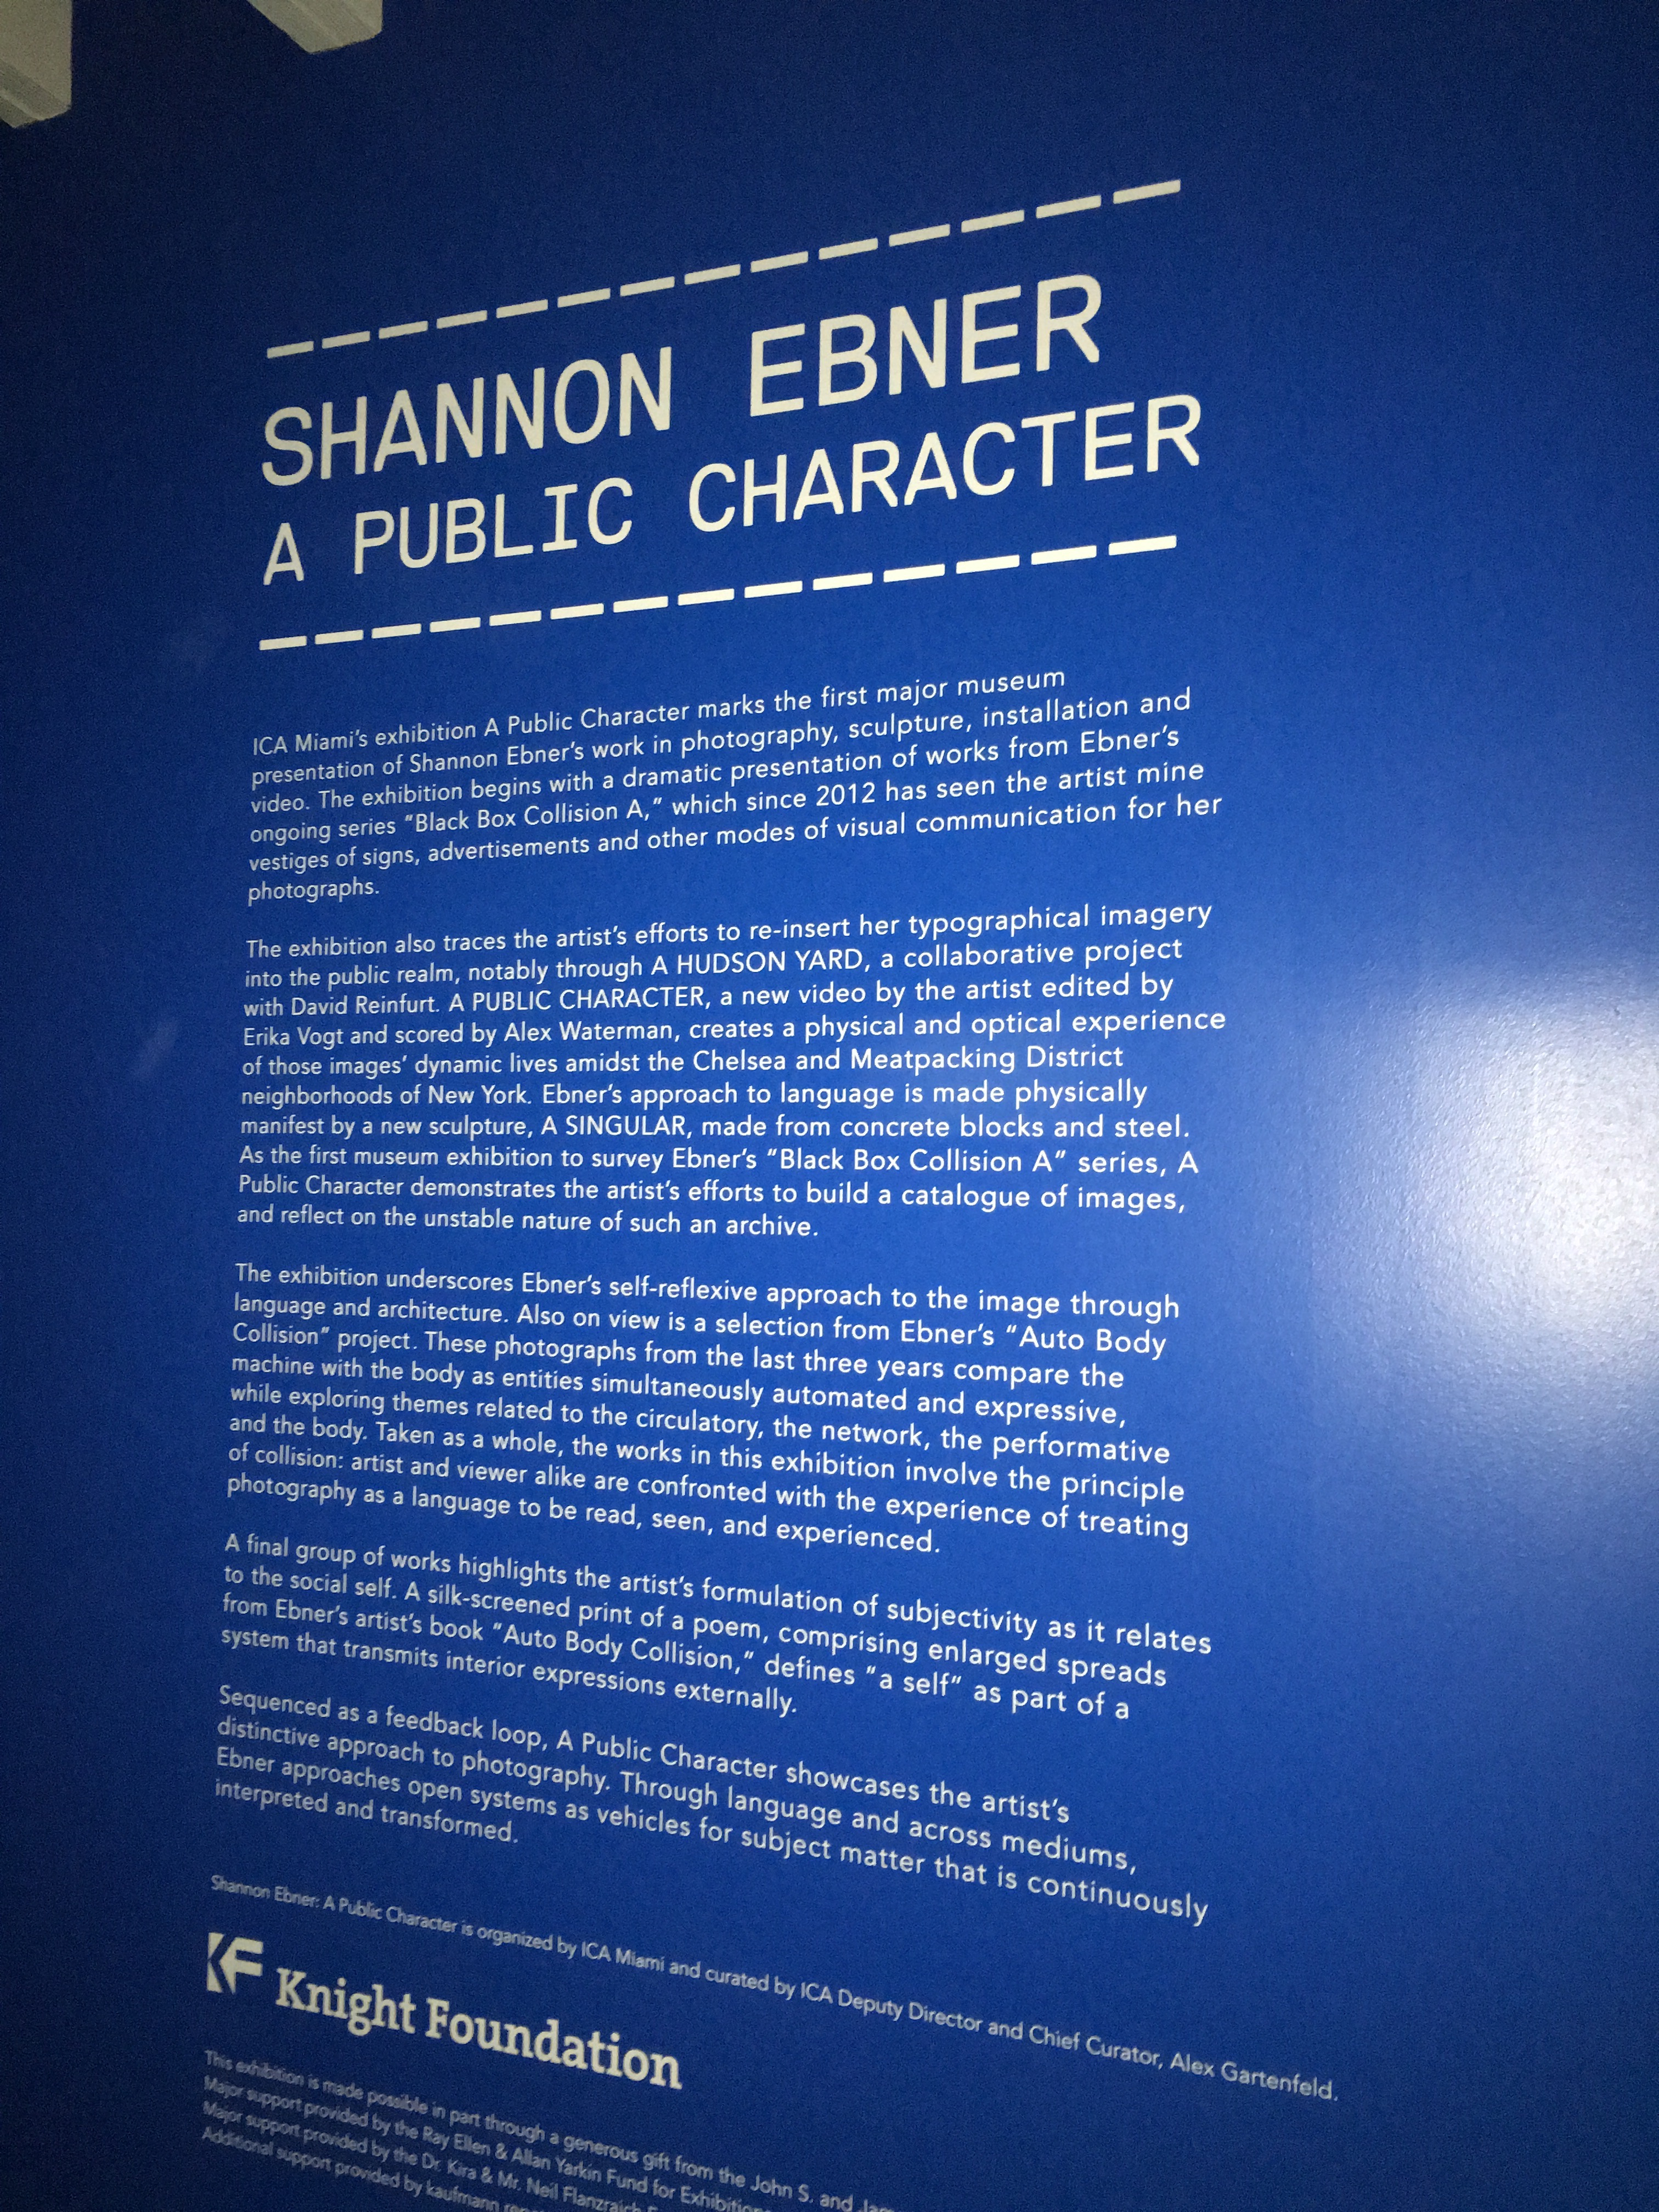 Shannon Ebner, A Public Character